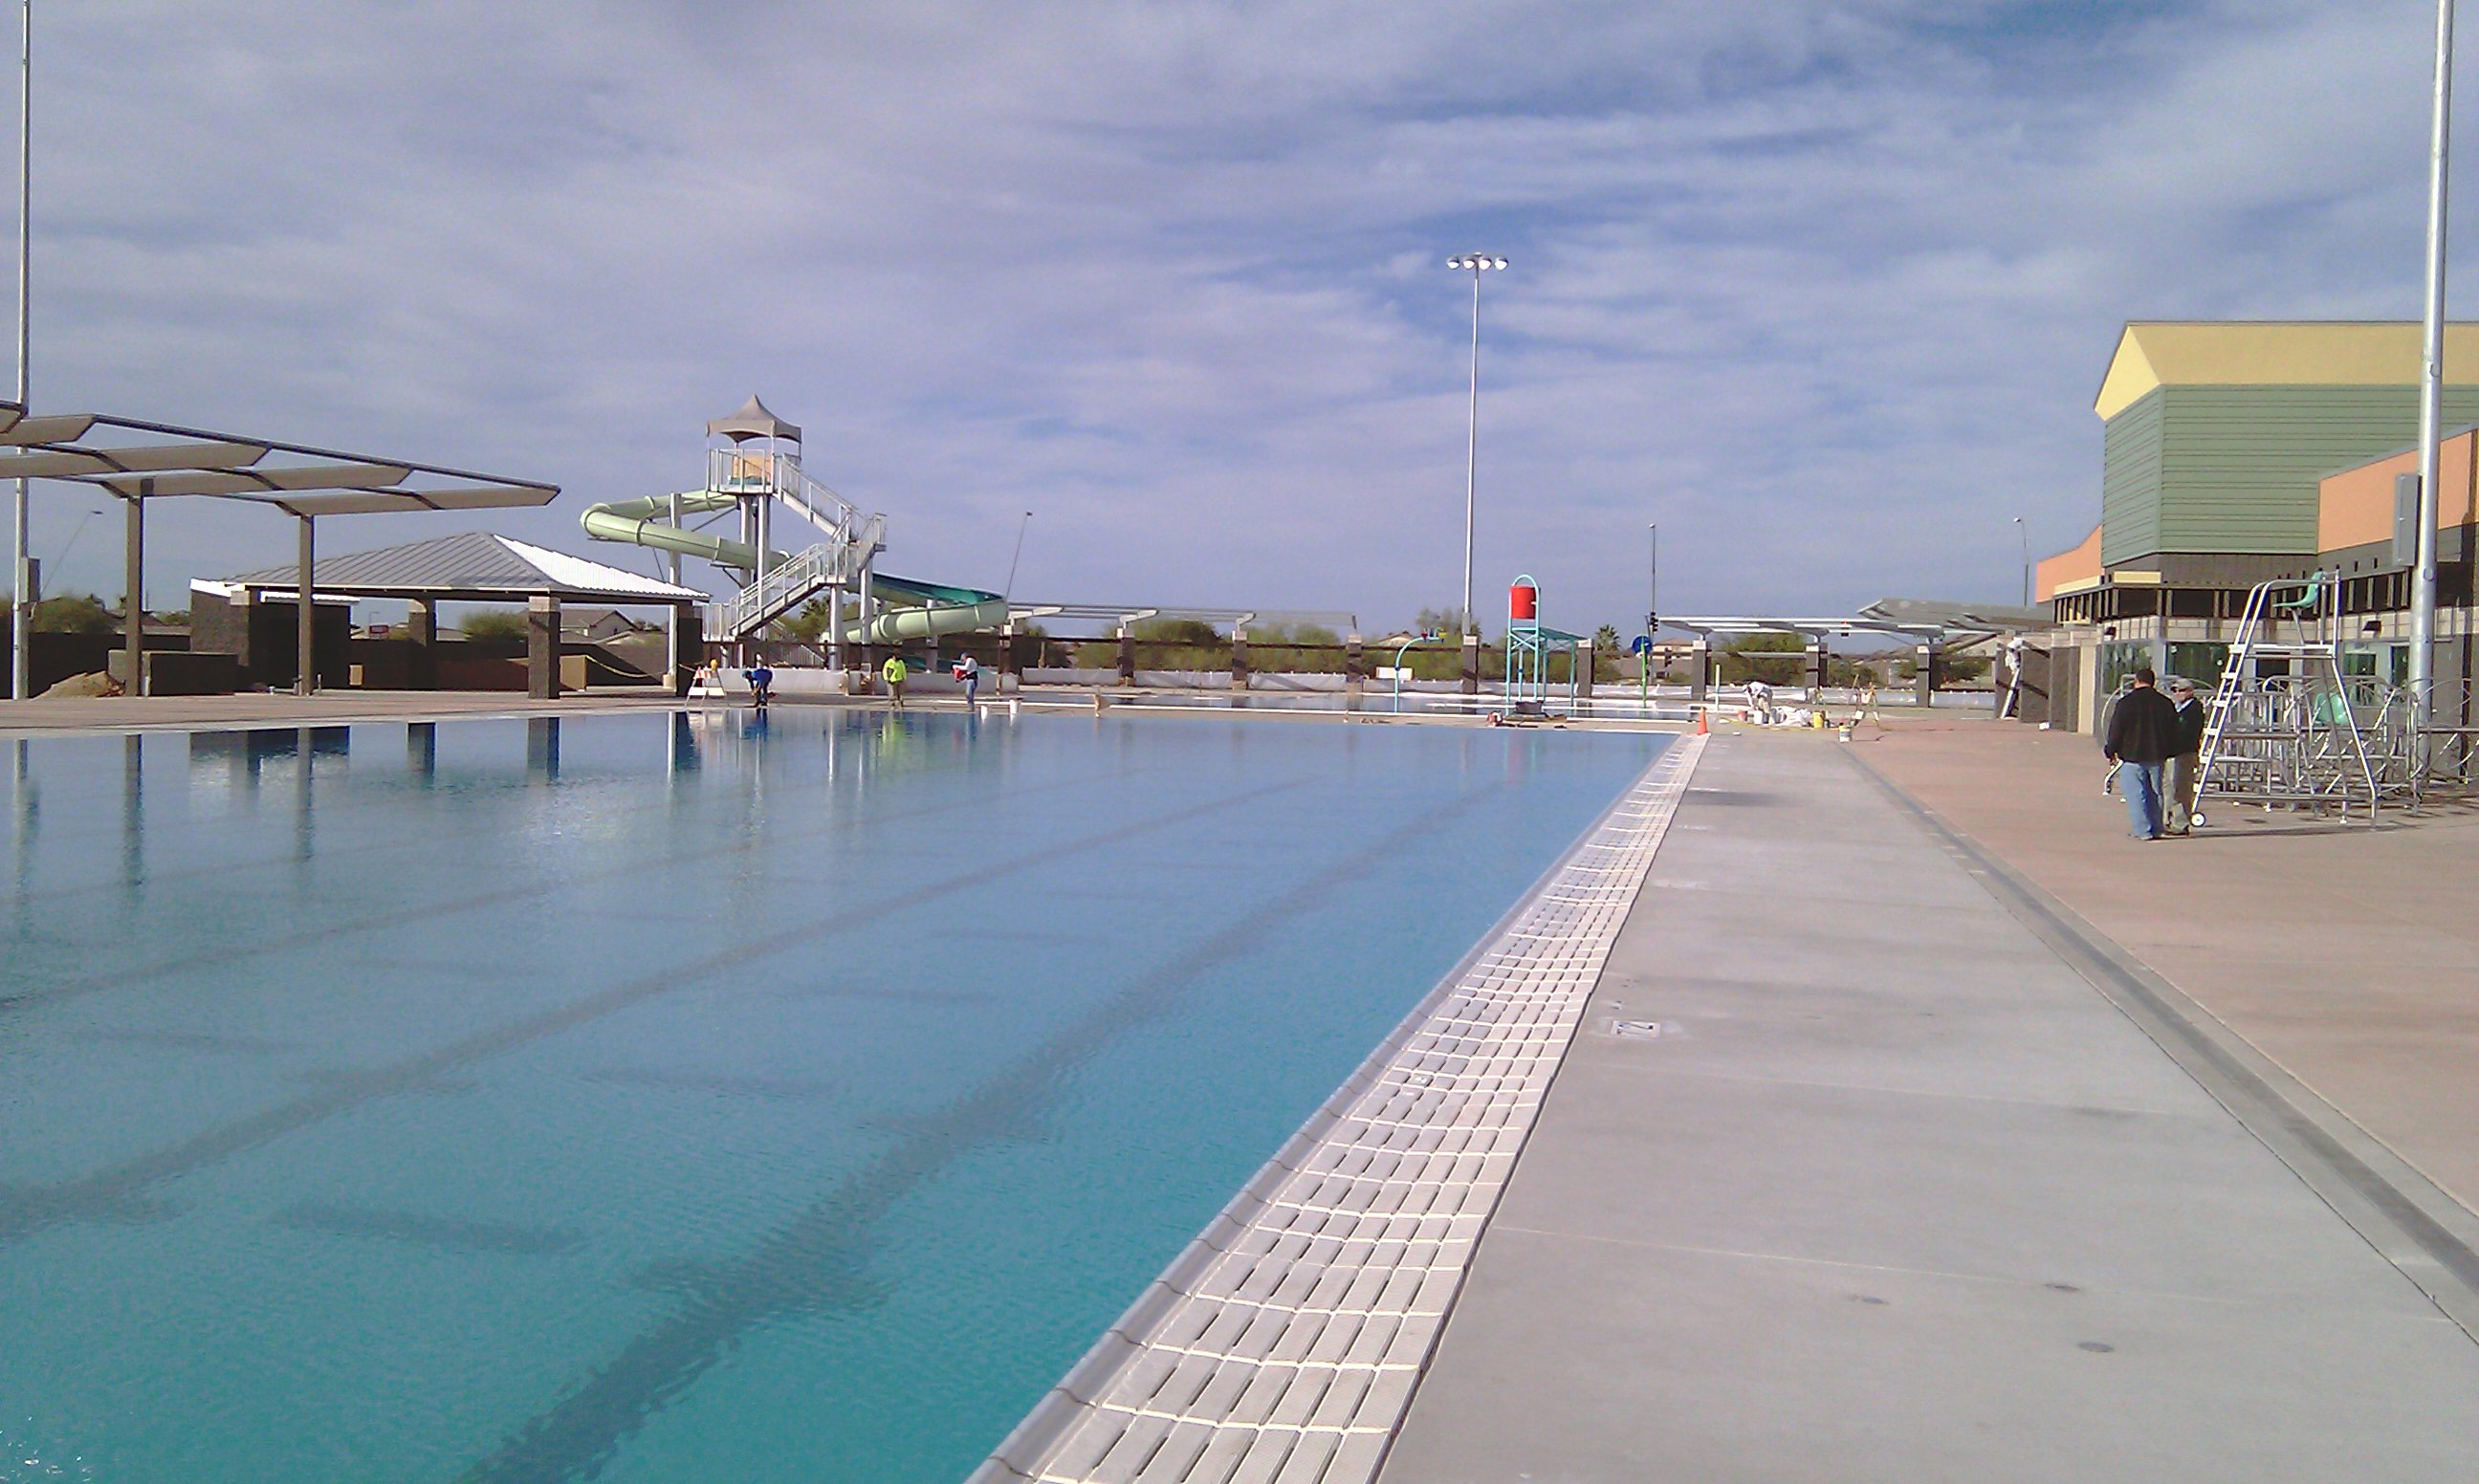 Aquatic queen creek aquatic center - West mesa high school swimming pool ...